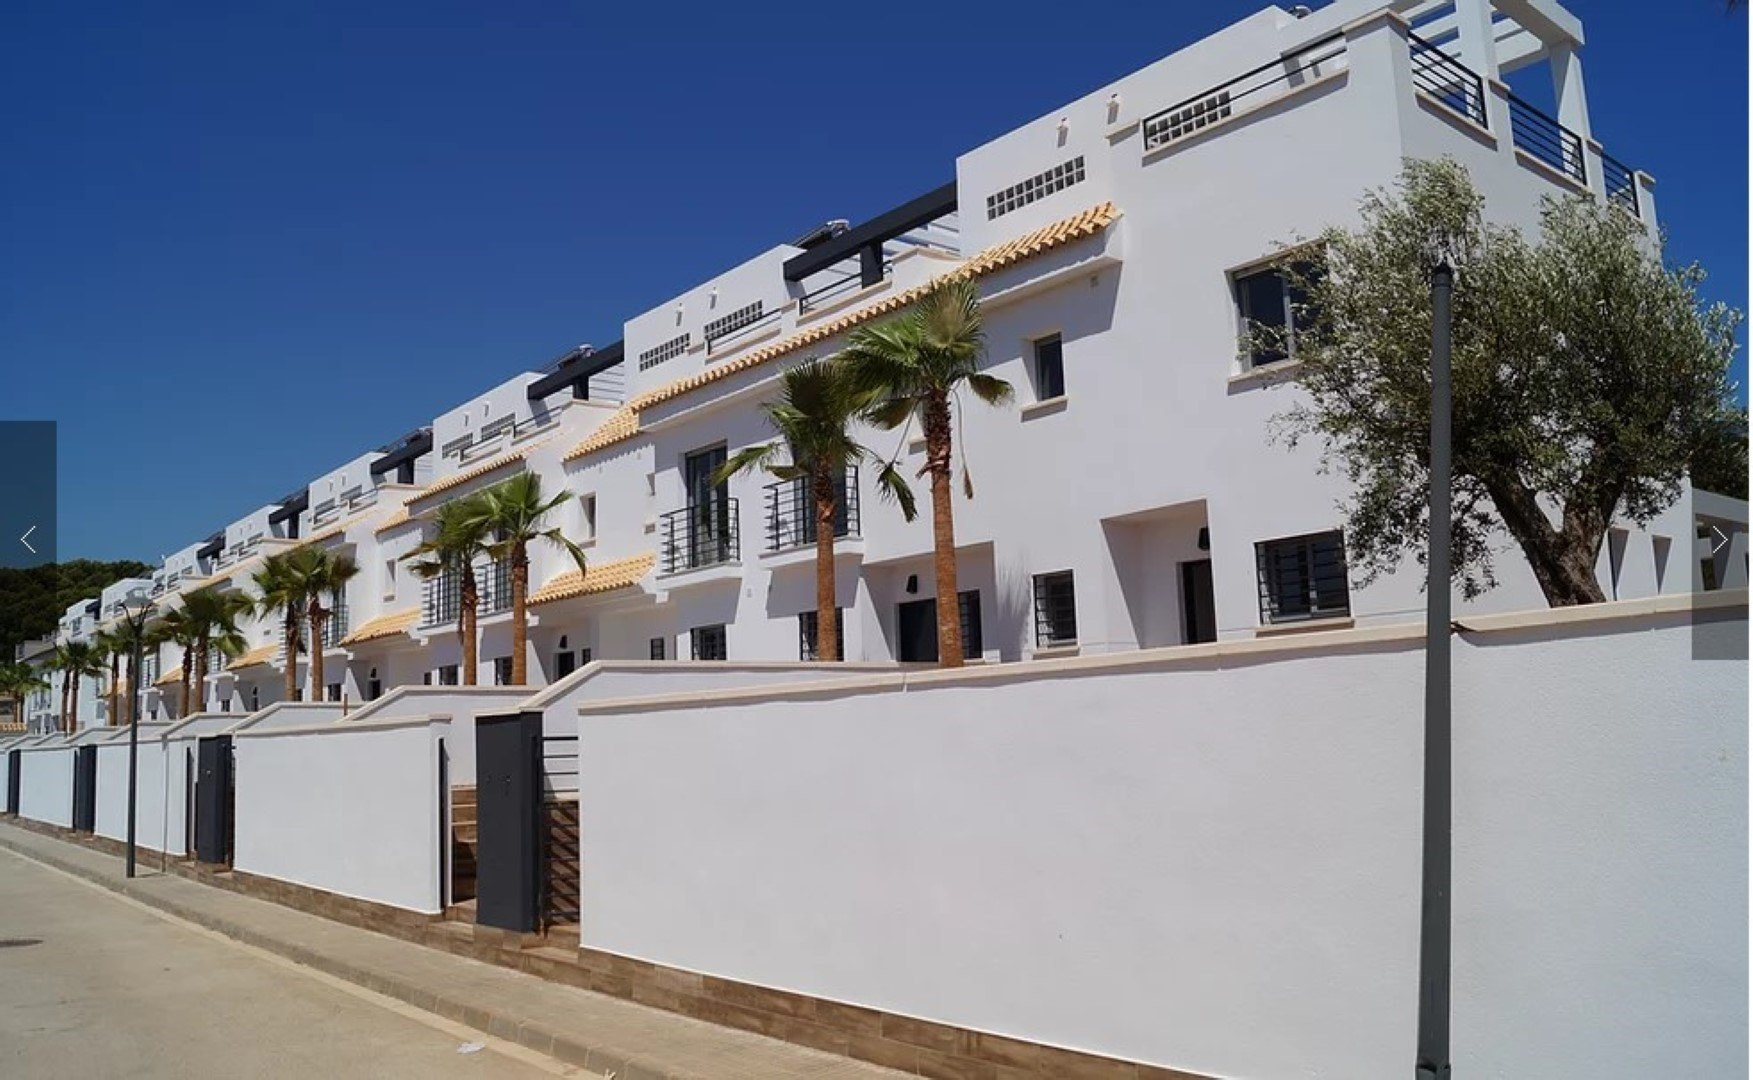 Bungalow in Jesus Pobre New 3-bedroom townhouse for sale